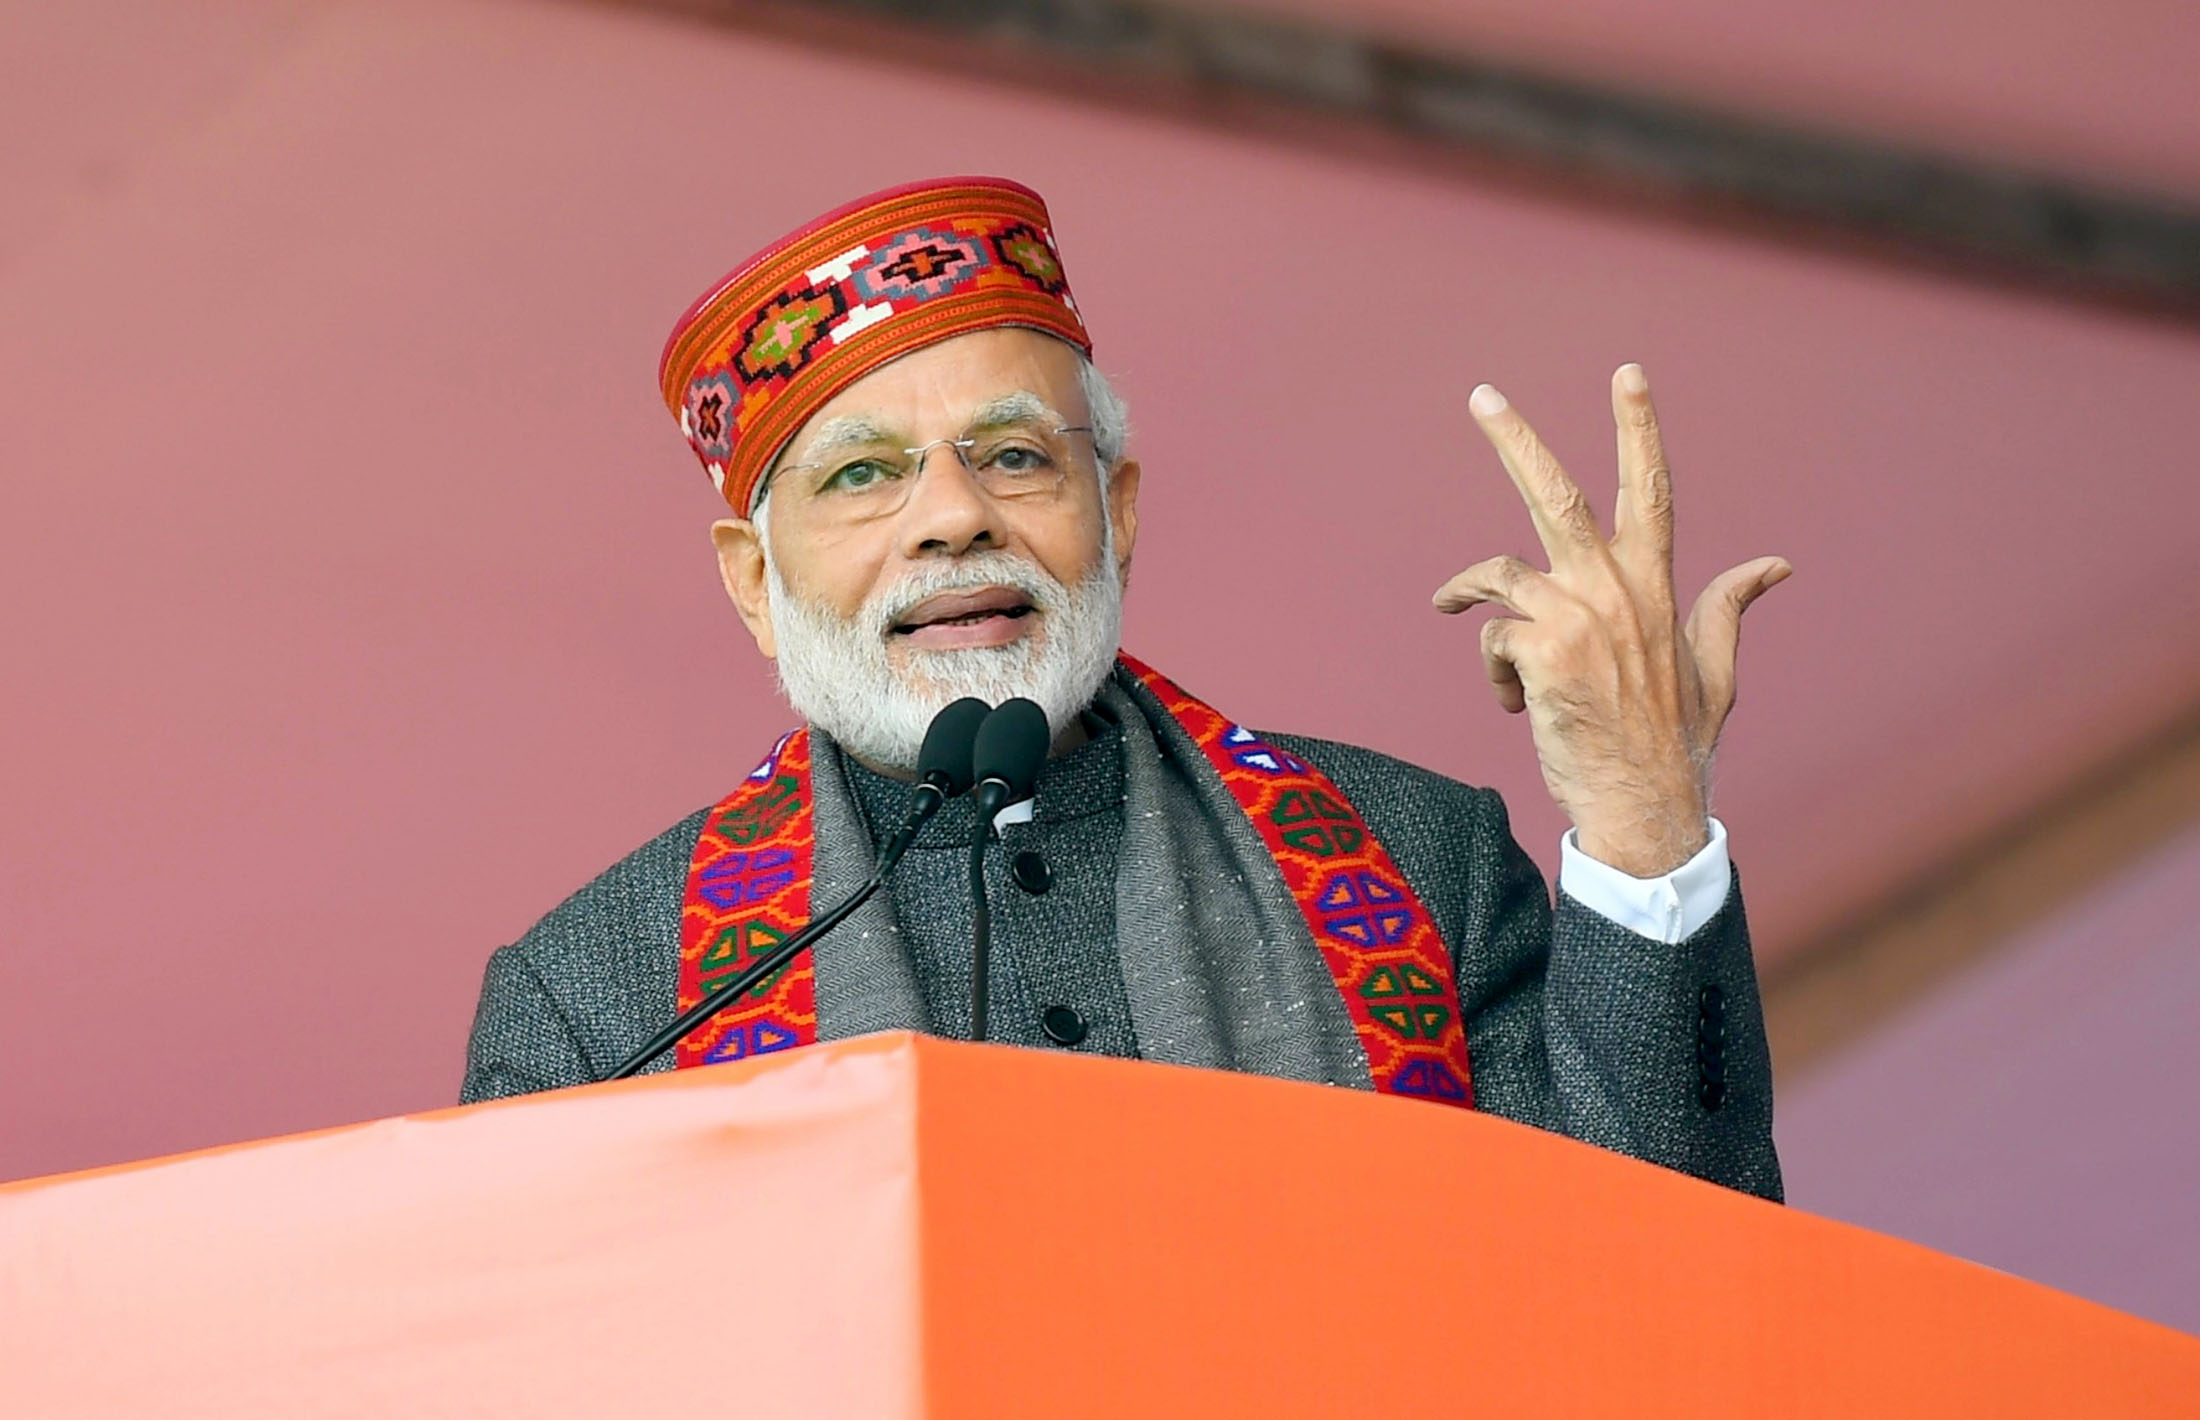 The Prime Minister, Shri Narendra Modi addressing at the function to mark one-year of Himachal Pradesh Government, in Dharamshala, Himachal Pradesh on December 27, 2018.